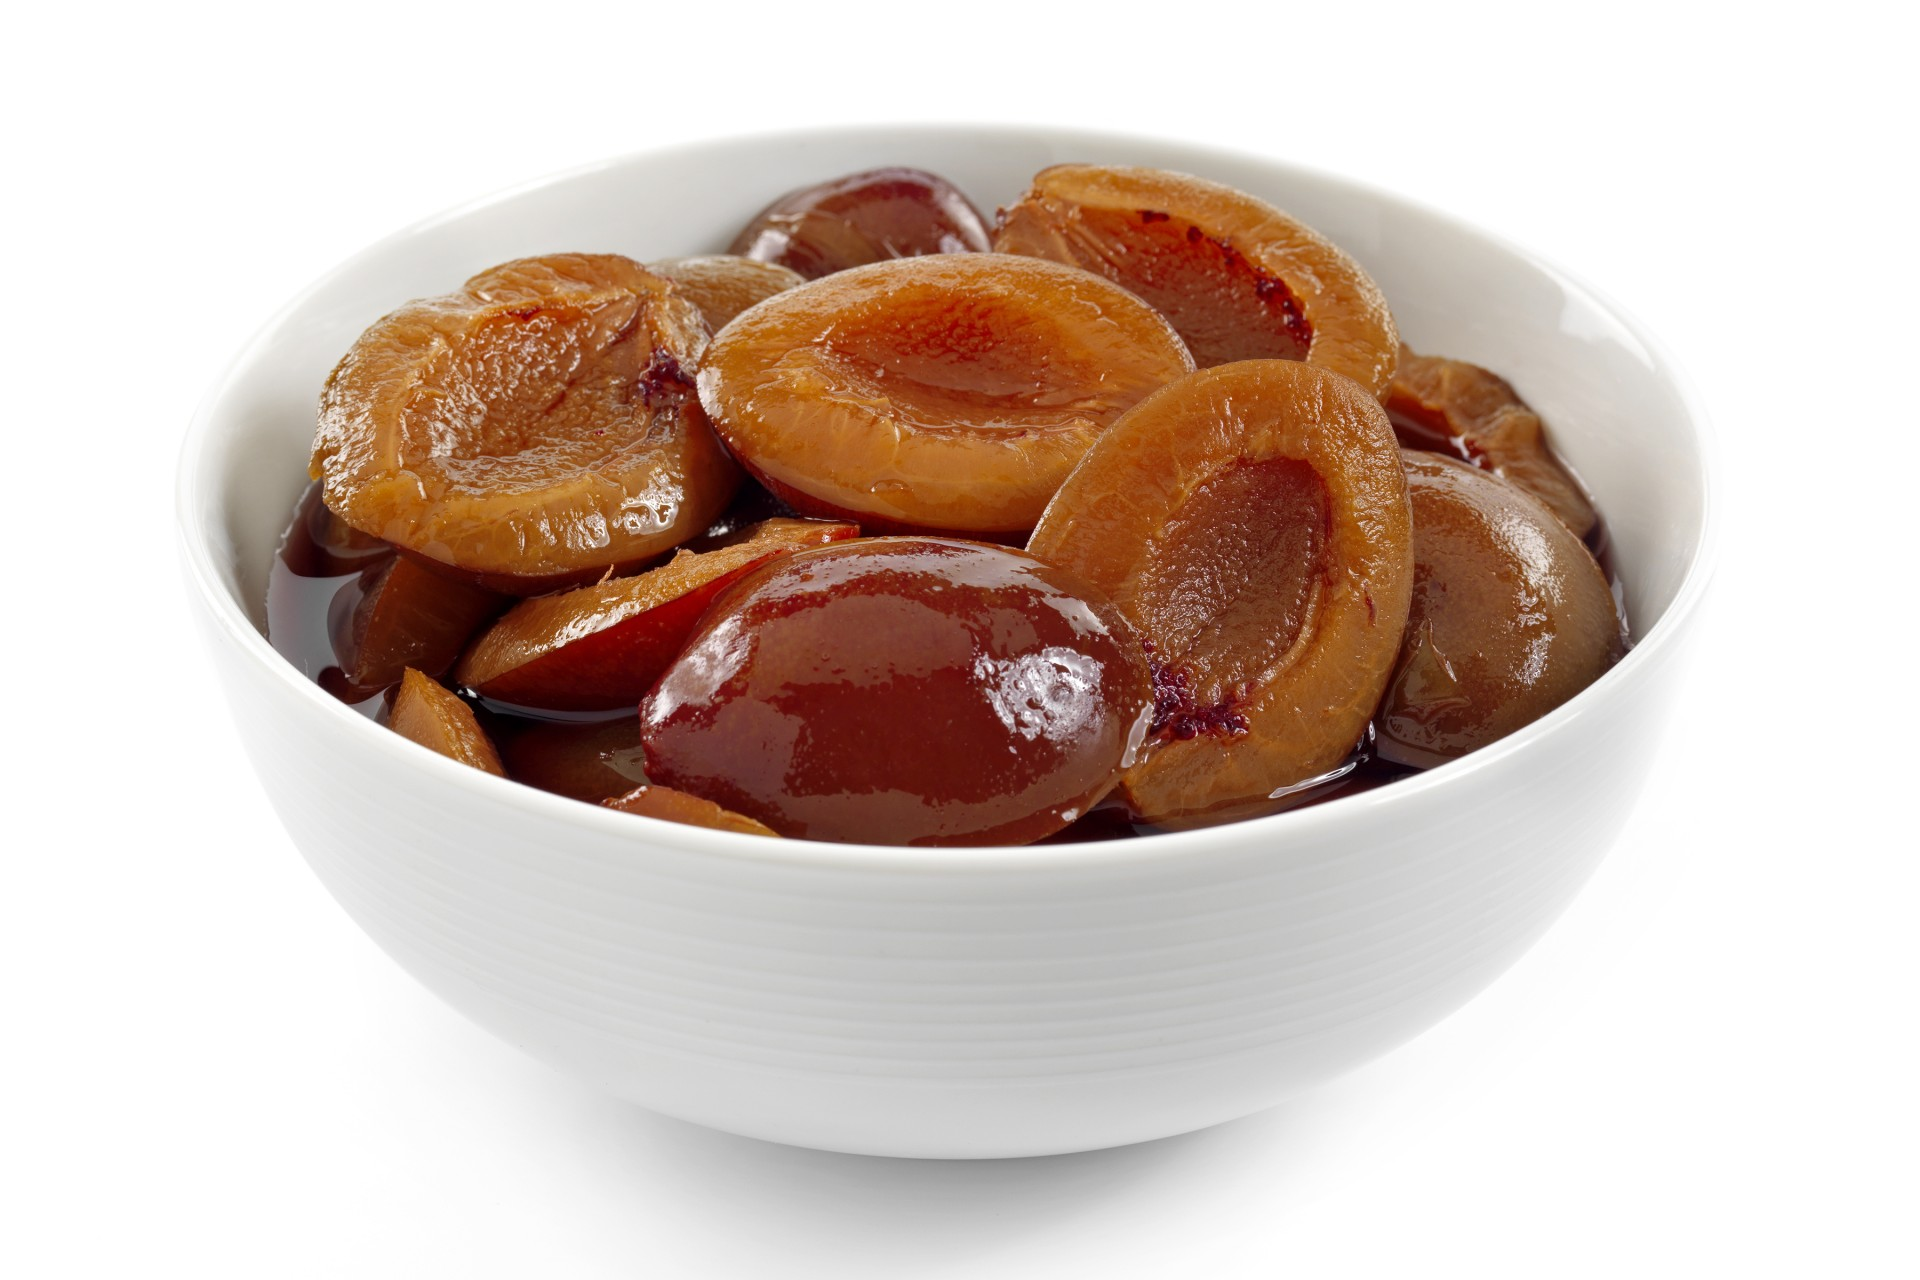 Plum Halves in Syrup